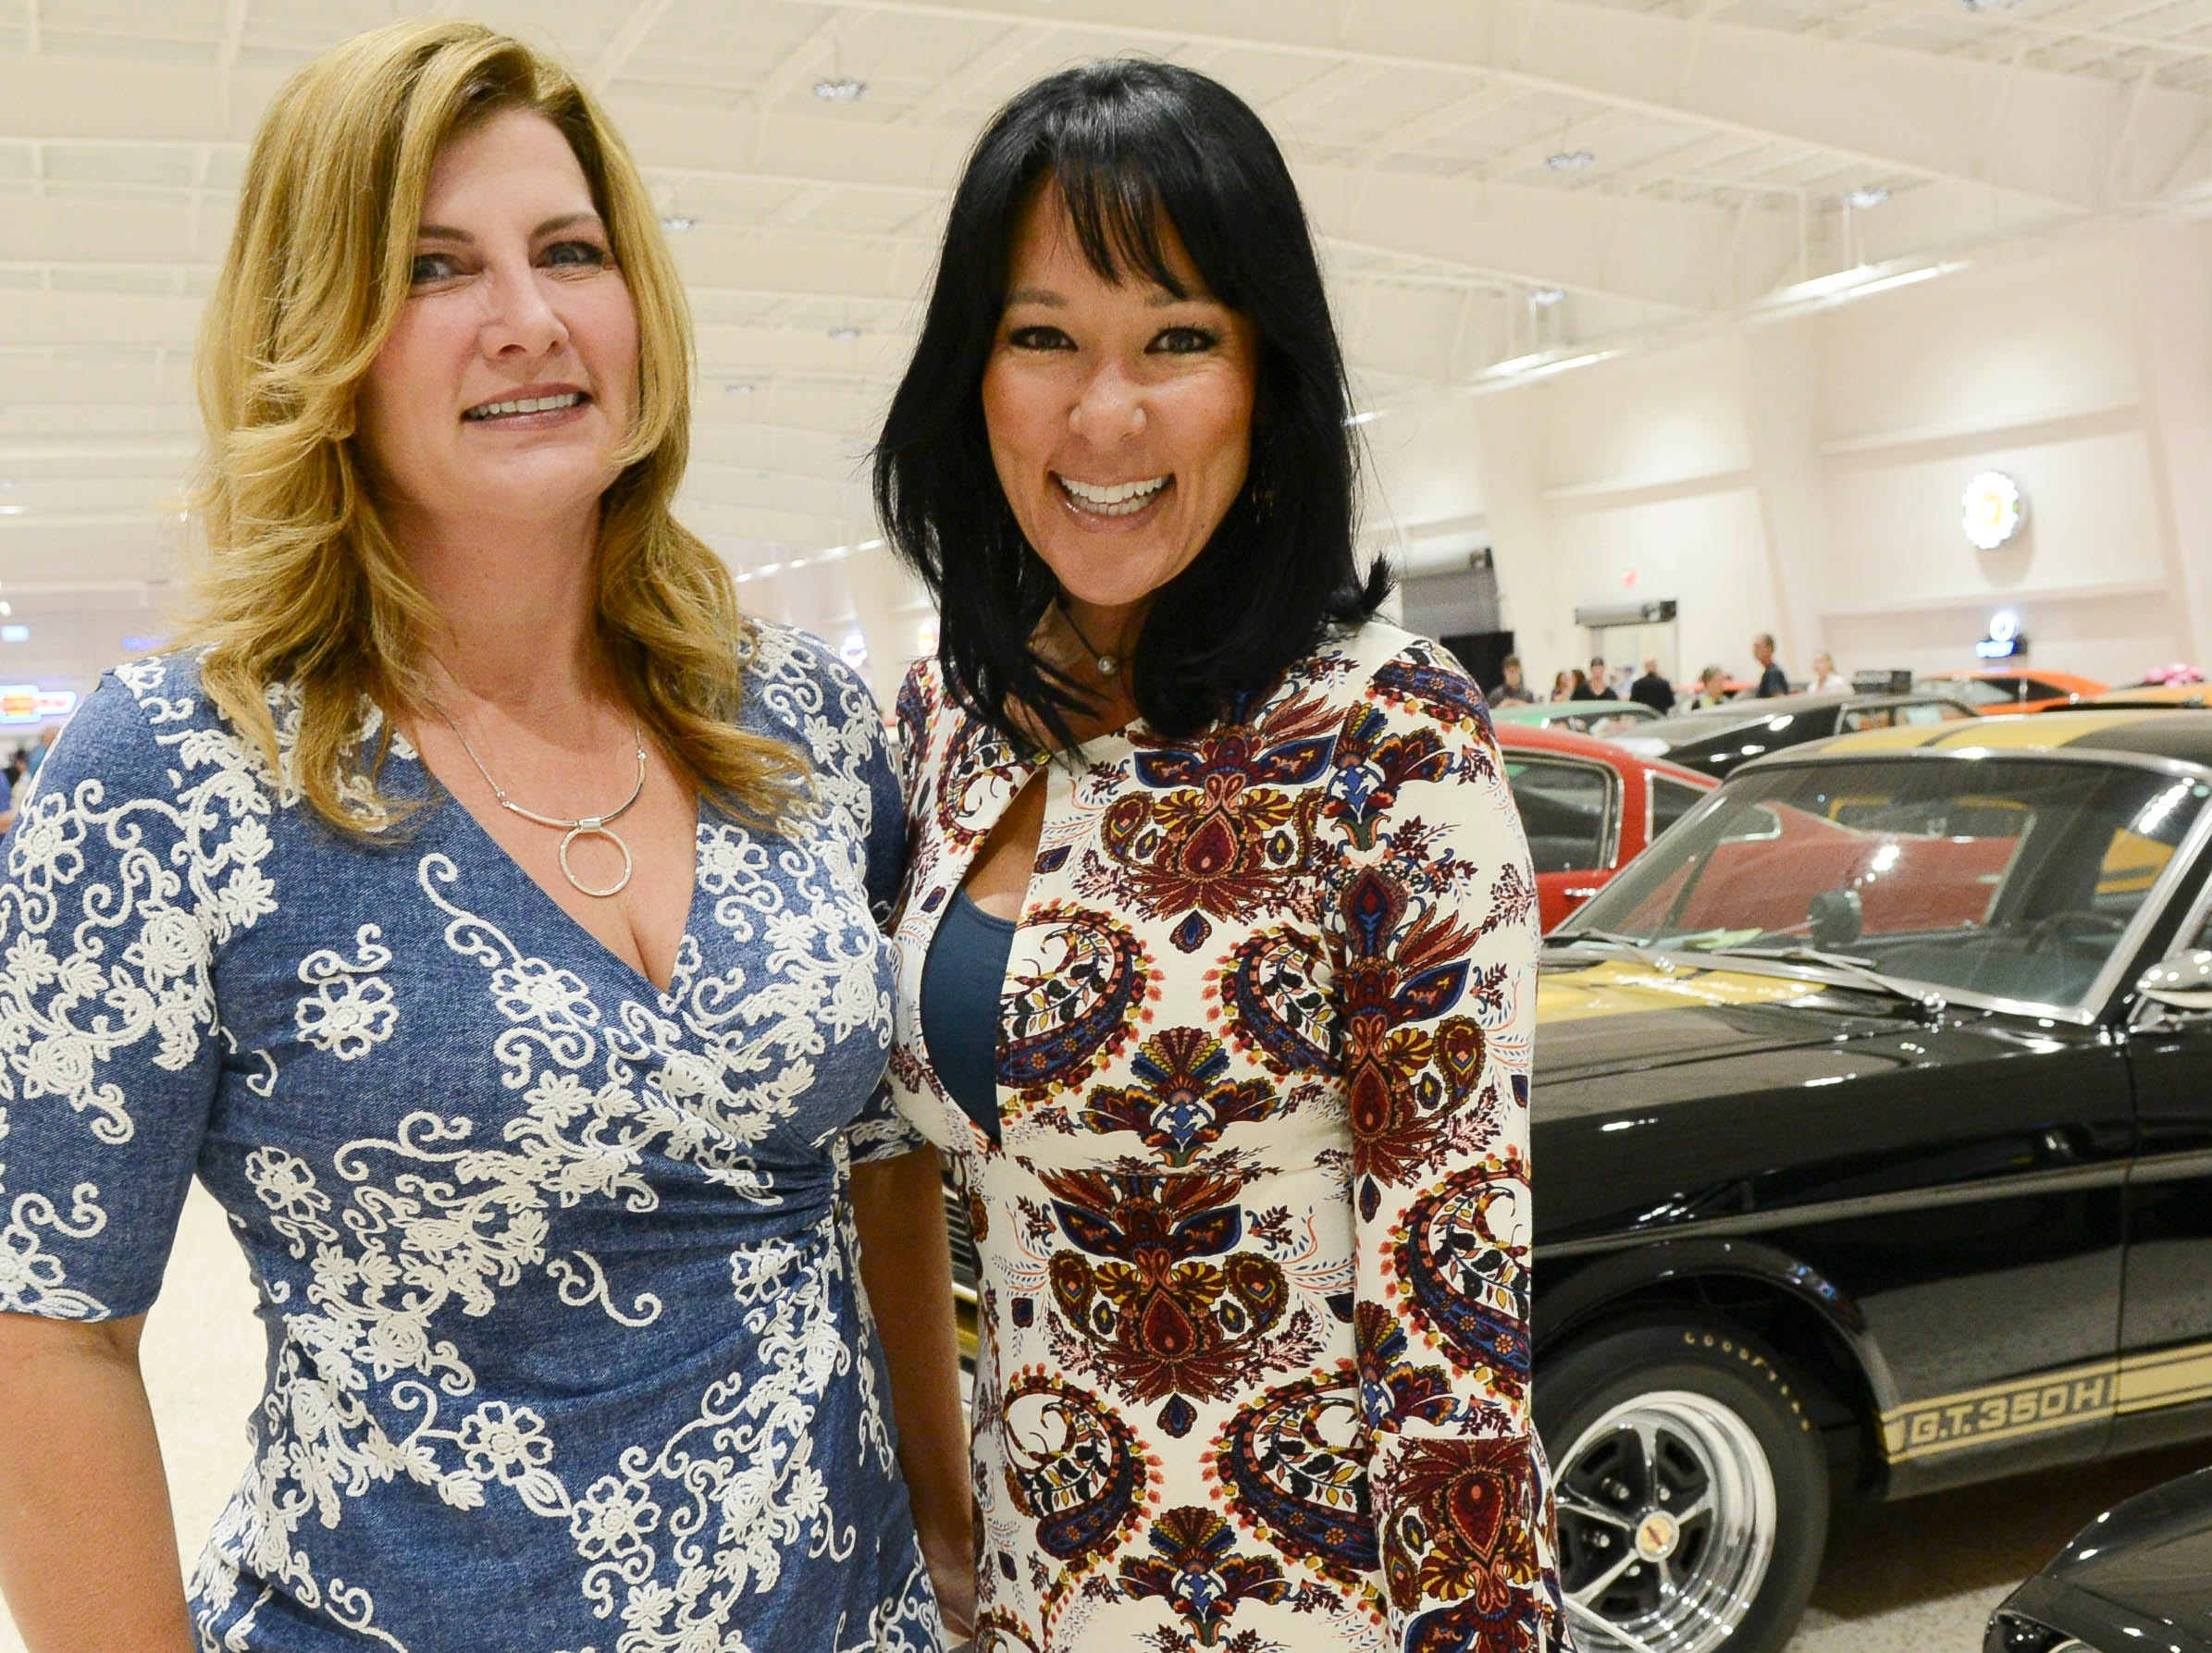 Julie King and Jennifer Gordon get their picture taken during the Stars and Stripes fundraiser at American Muscle Car Museum. The event was a fundraiser for Space Coast Honor Flight.